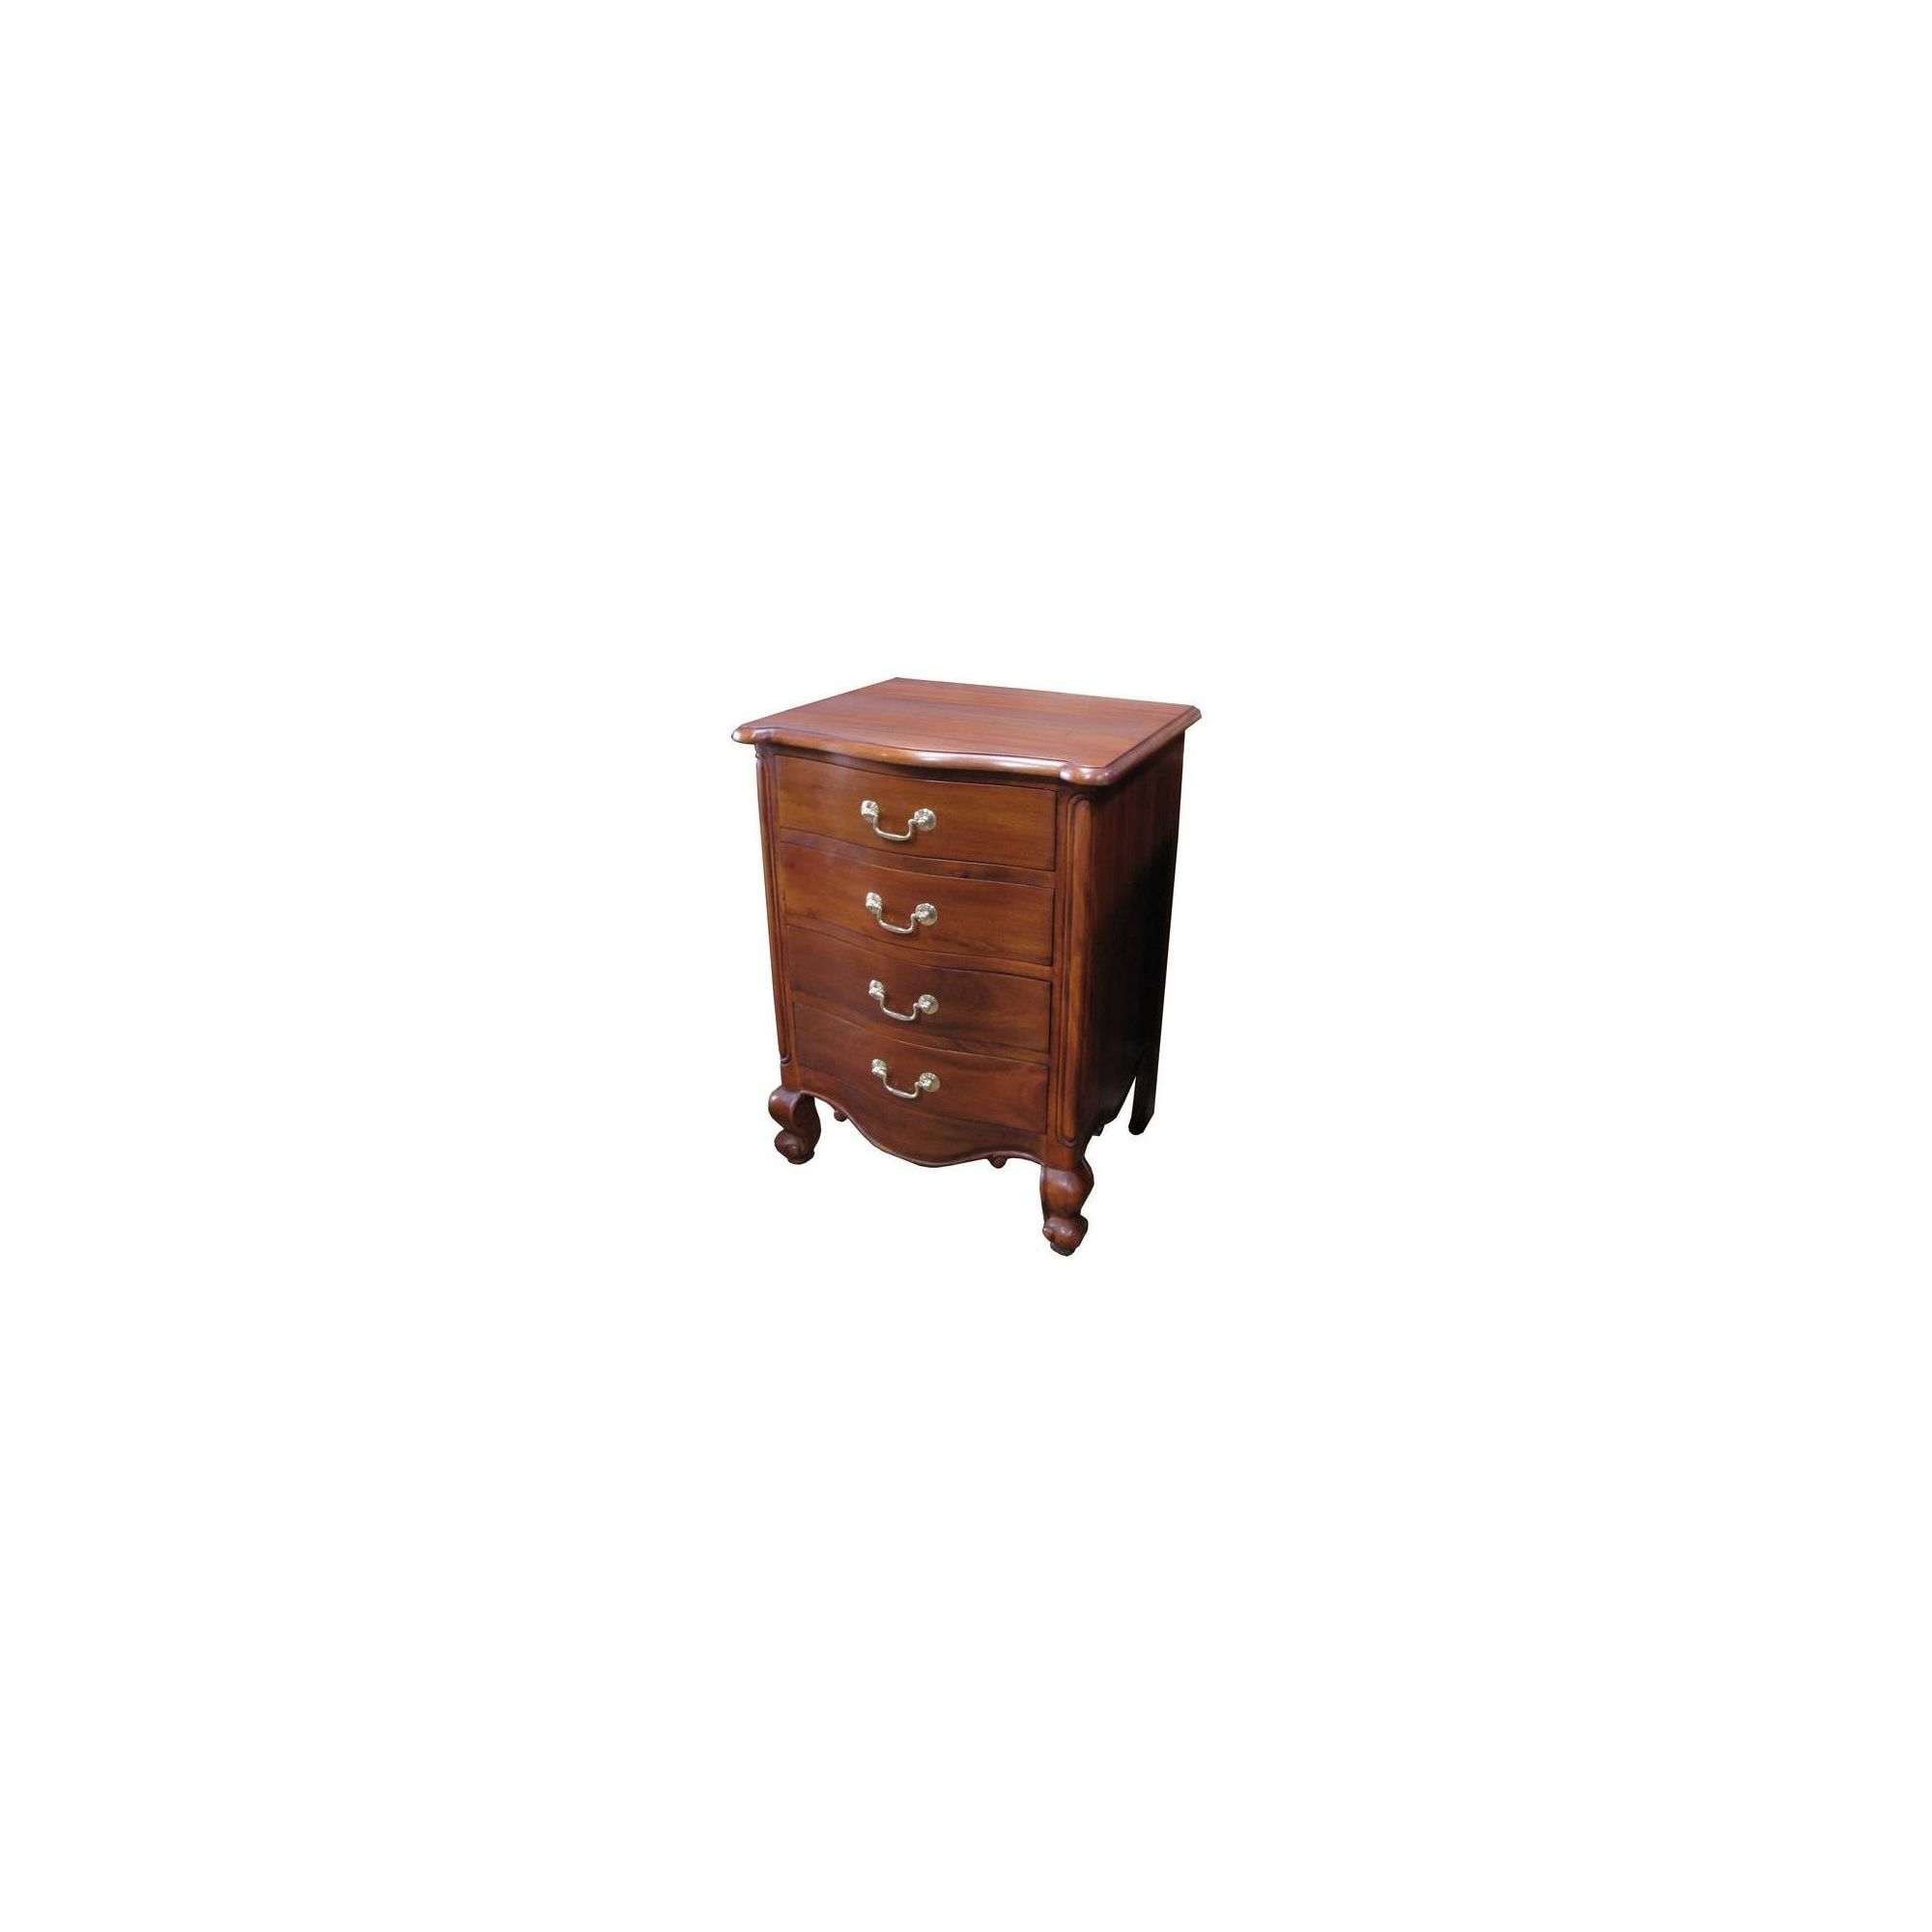 Lock stock and barrel Mahogany Louis 4 Drawer Bedside Table in Mahogany - Wax at Tescos Direct